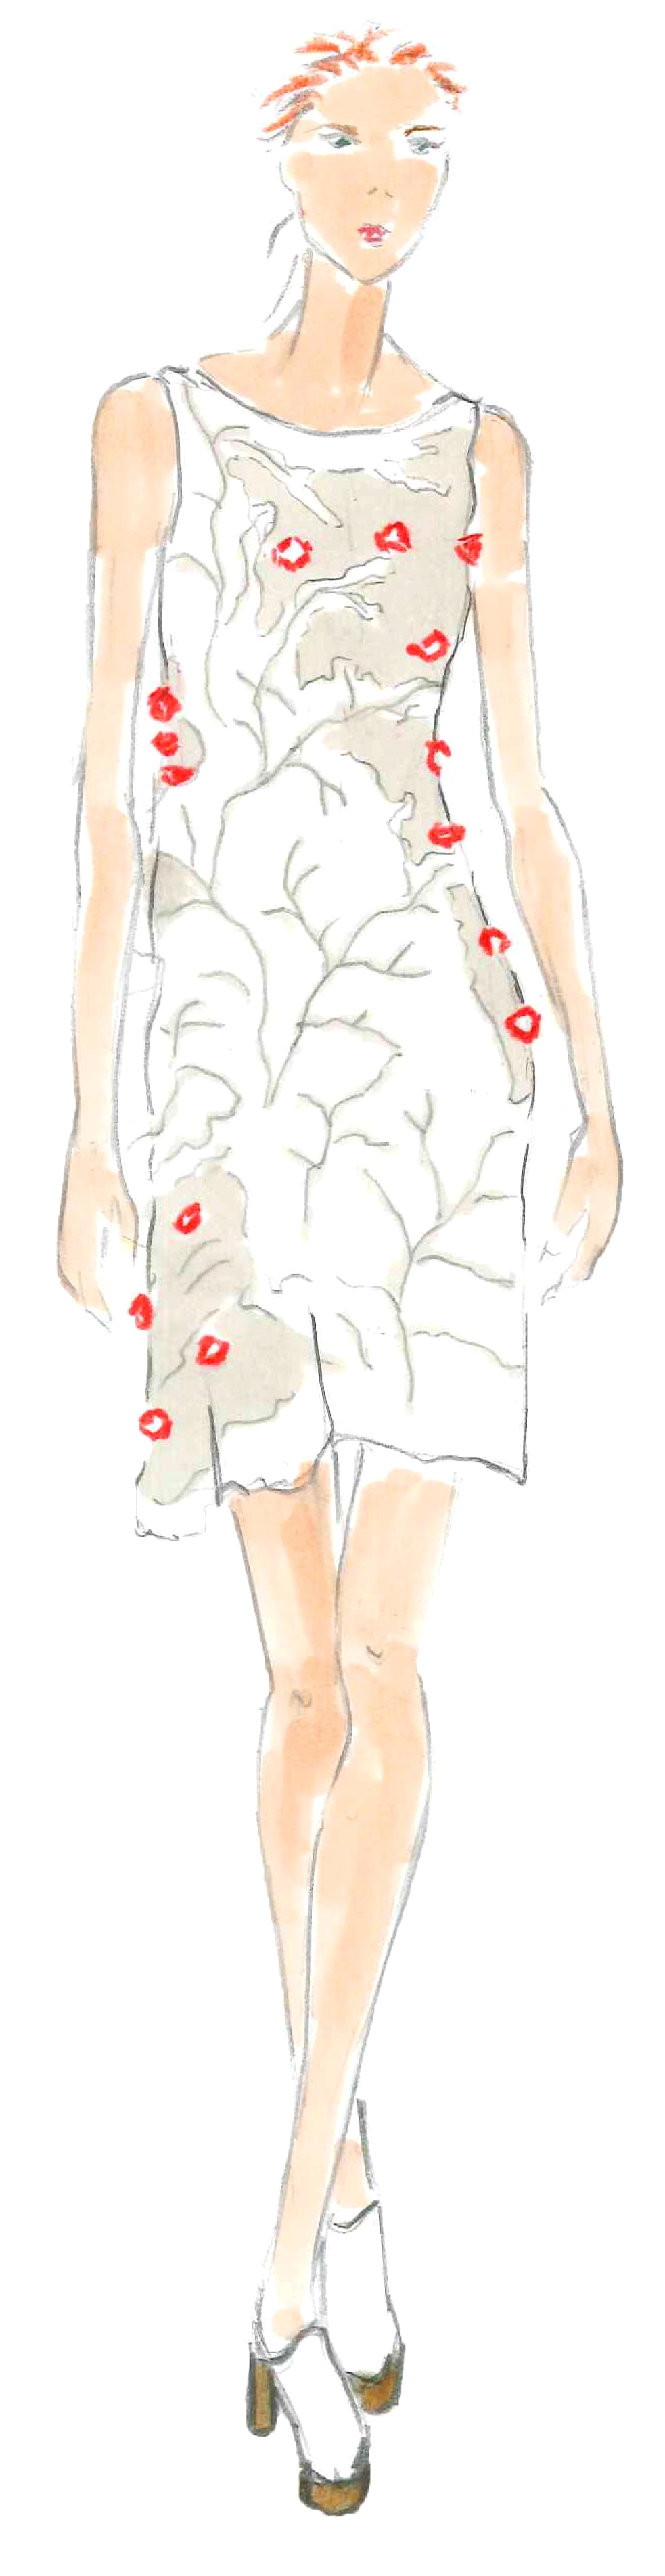 cherry_blossom_Dress_sketch.jpg